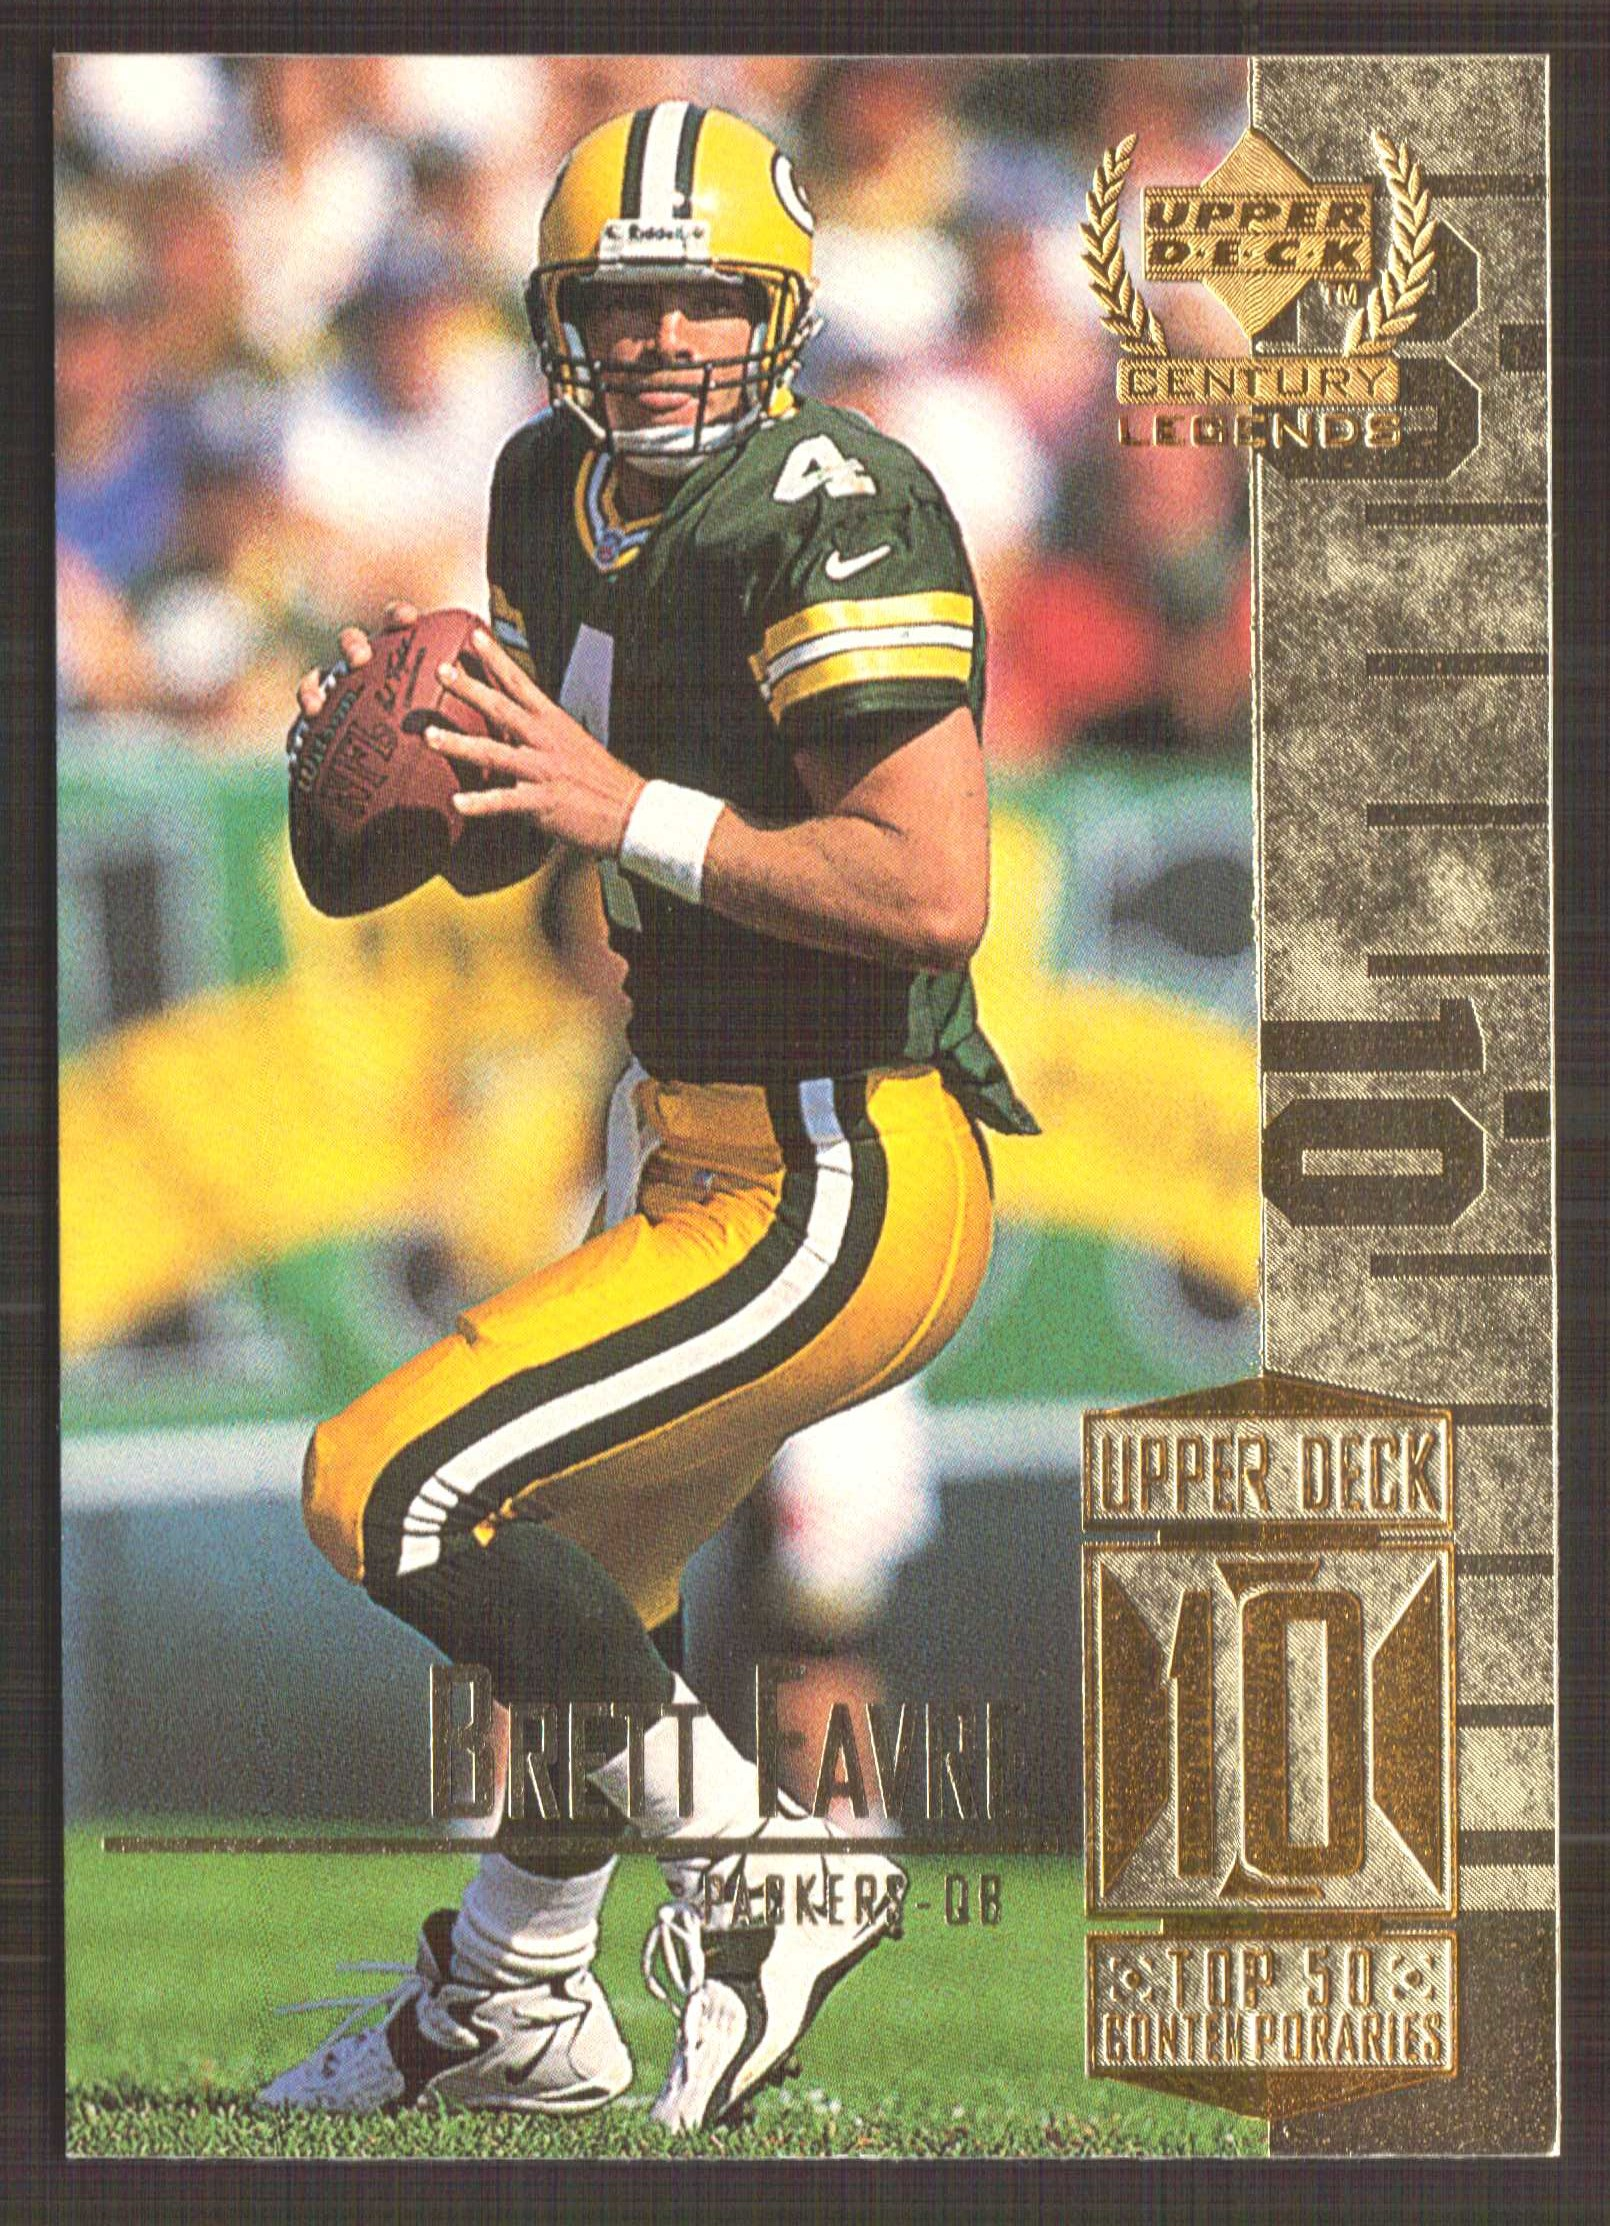 1999 Upper Deck Century Legends #60 Brett Favre